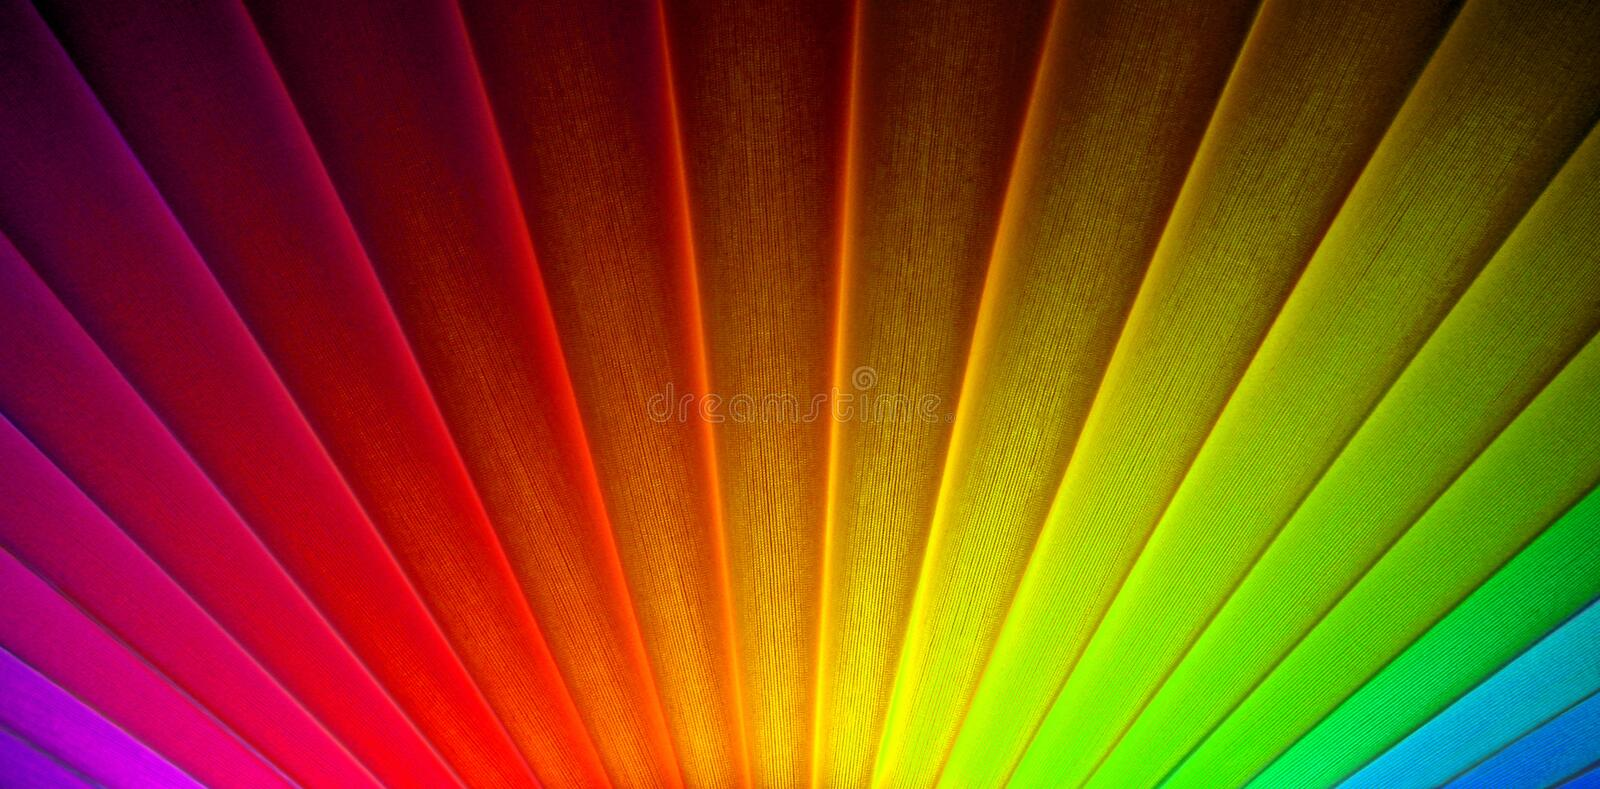 Retro spectrum. Photo of bright spectrum of colours ranging from warm tones of reds and mauves to cooler colours of greens and blues...ideal for backgrounds and